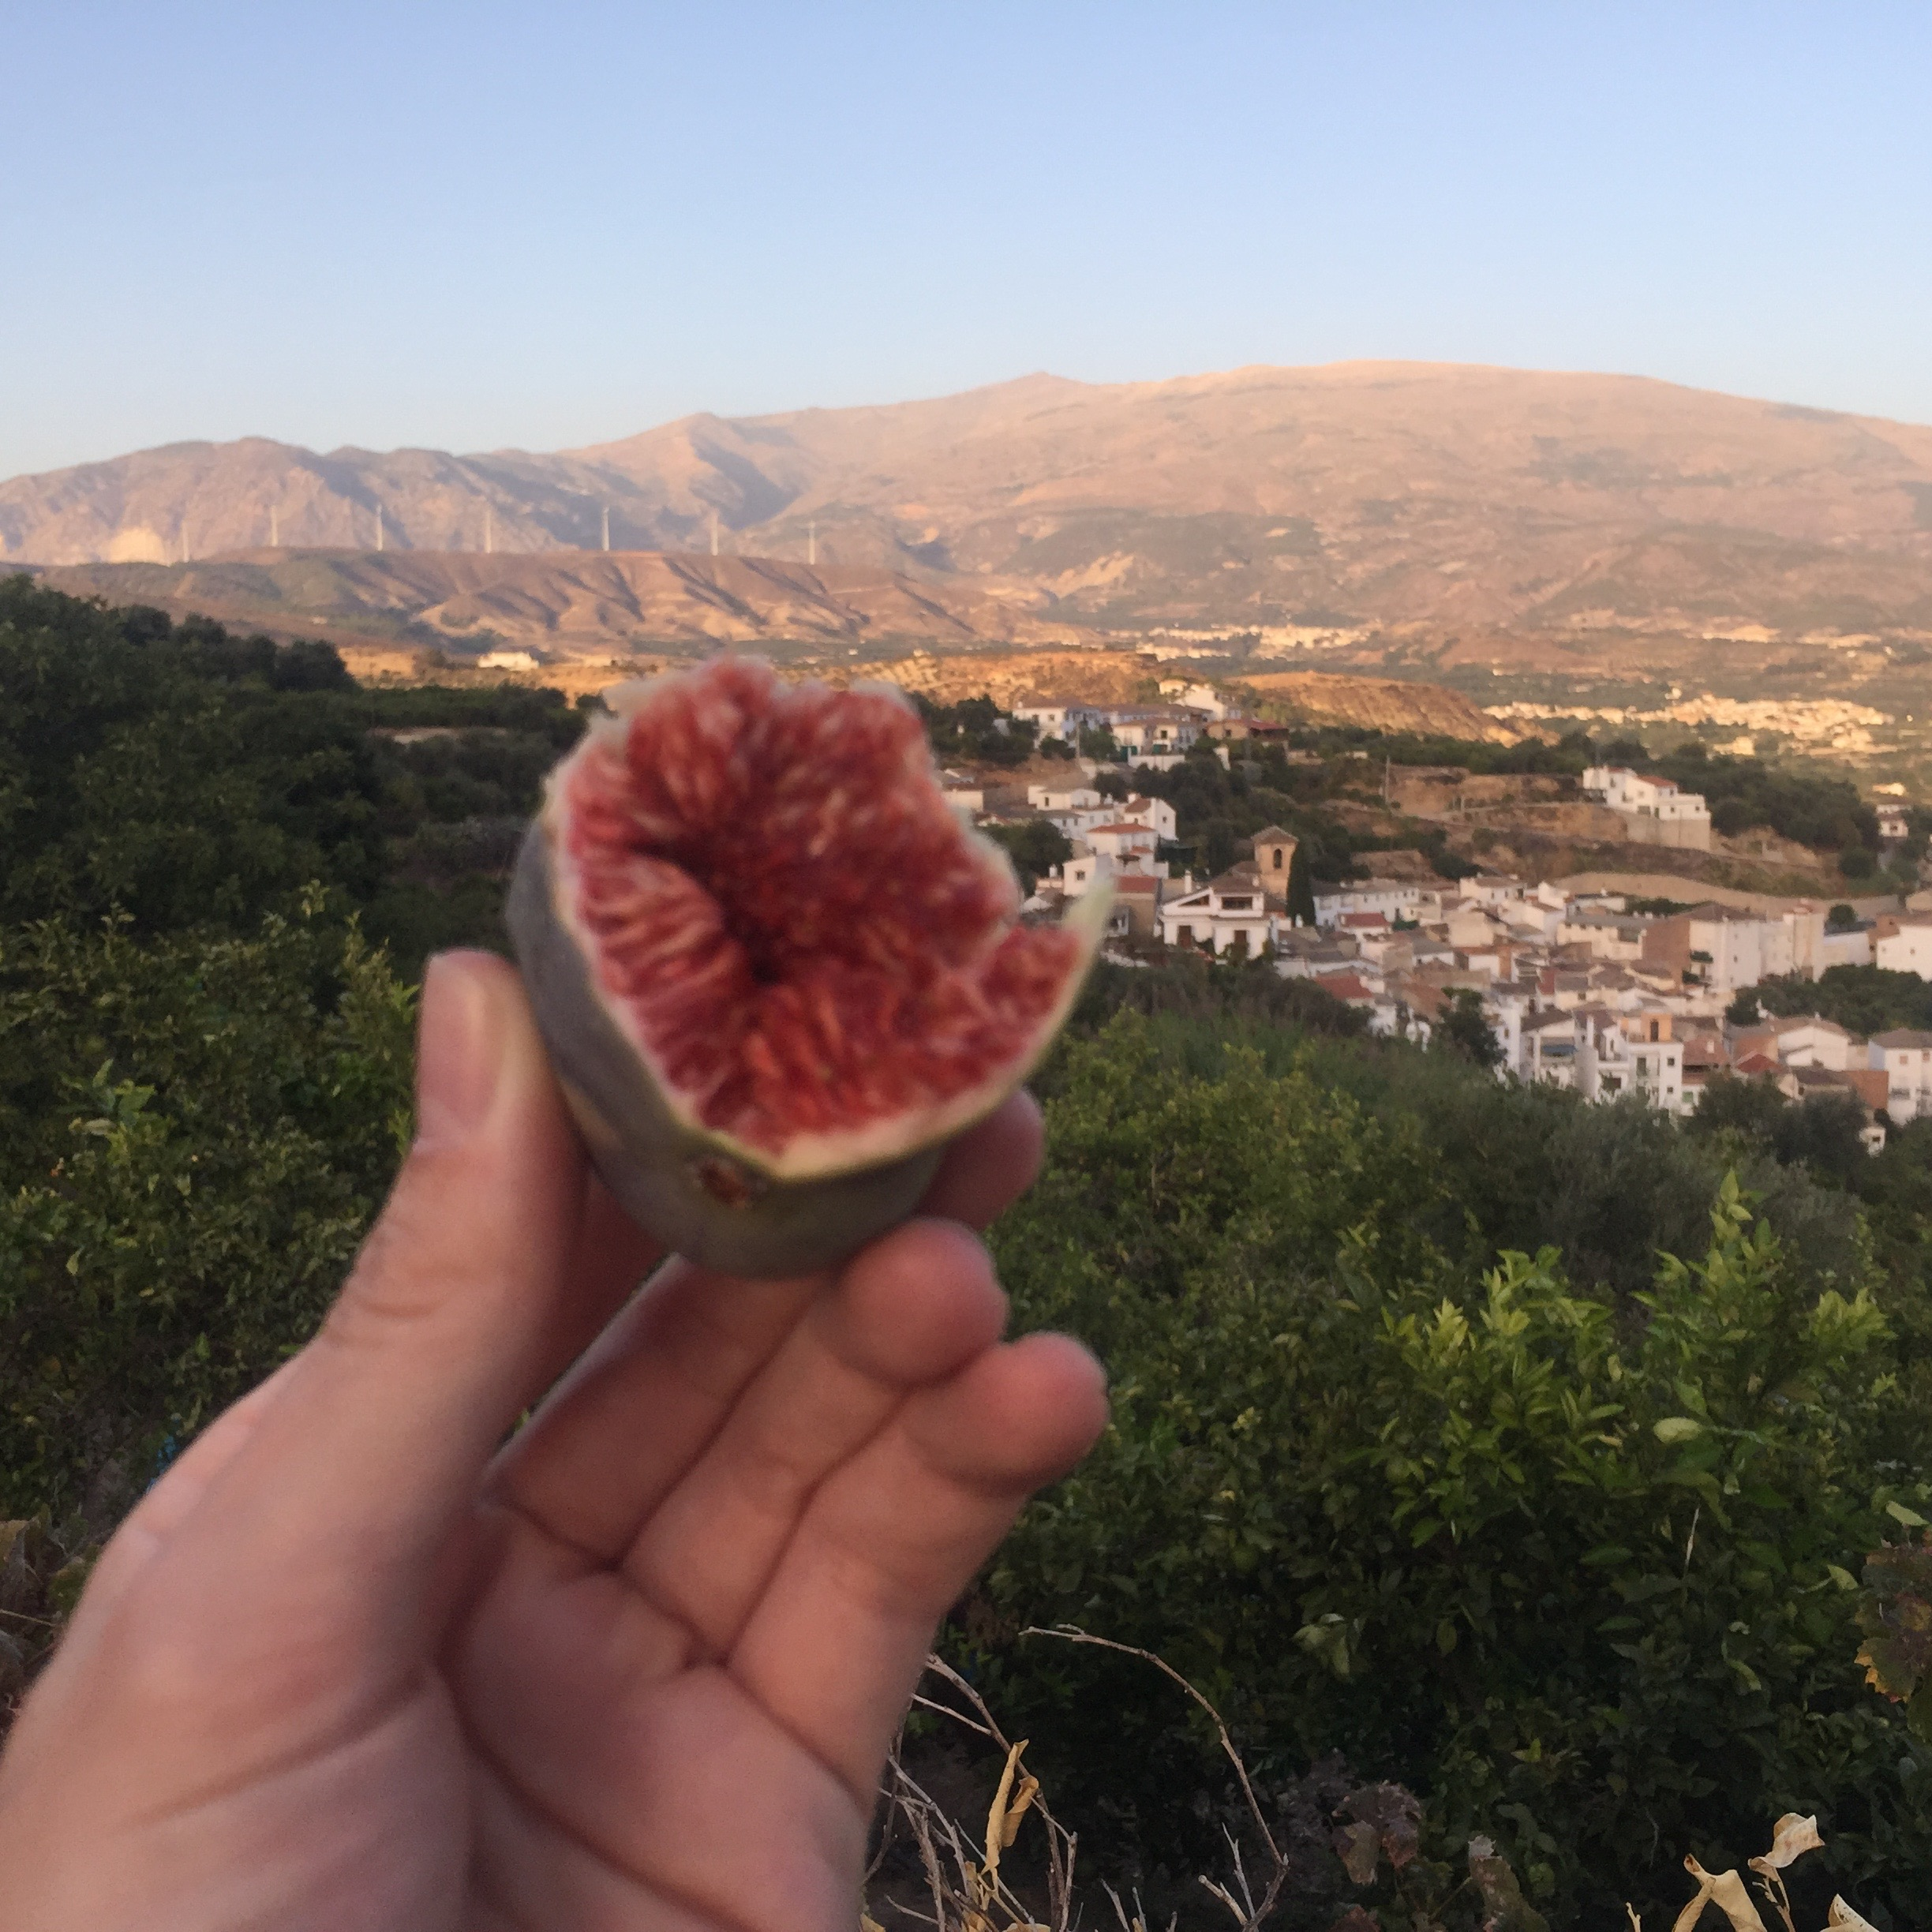 Munching on figs en route. our village and Sierra Nevada in the distance.